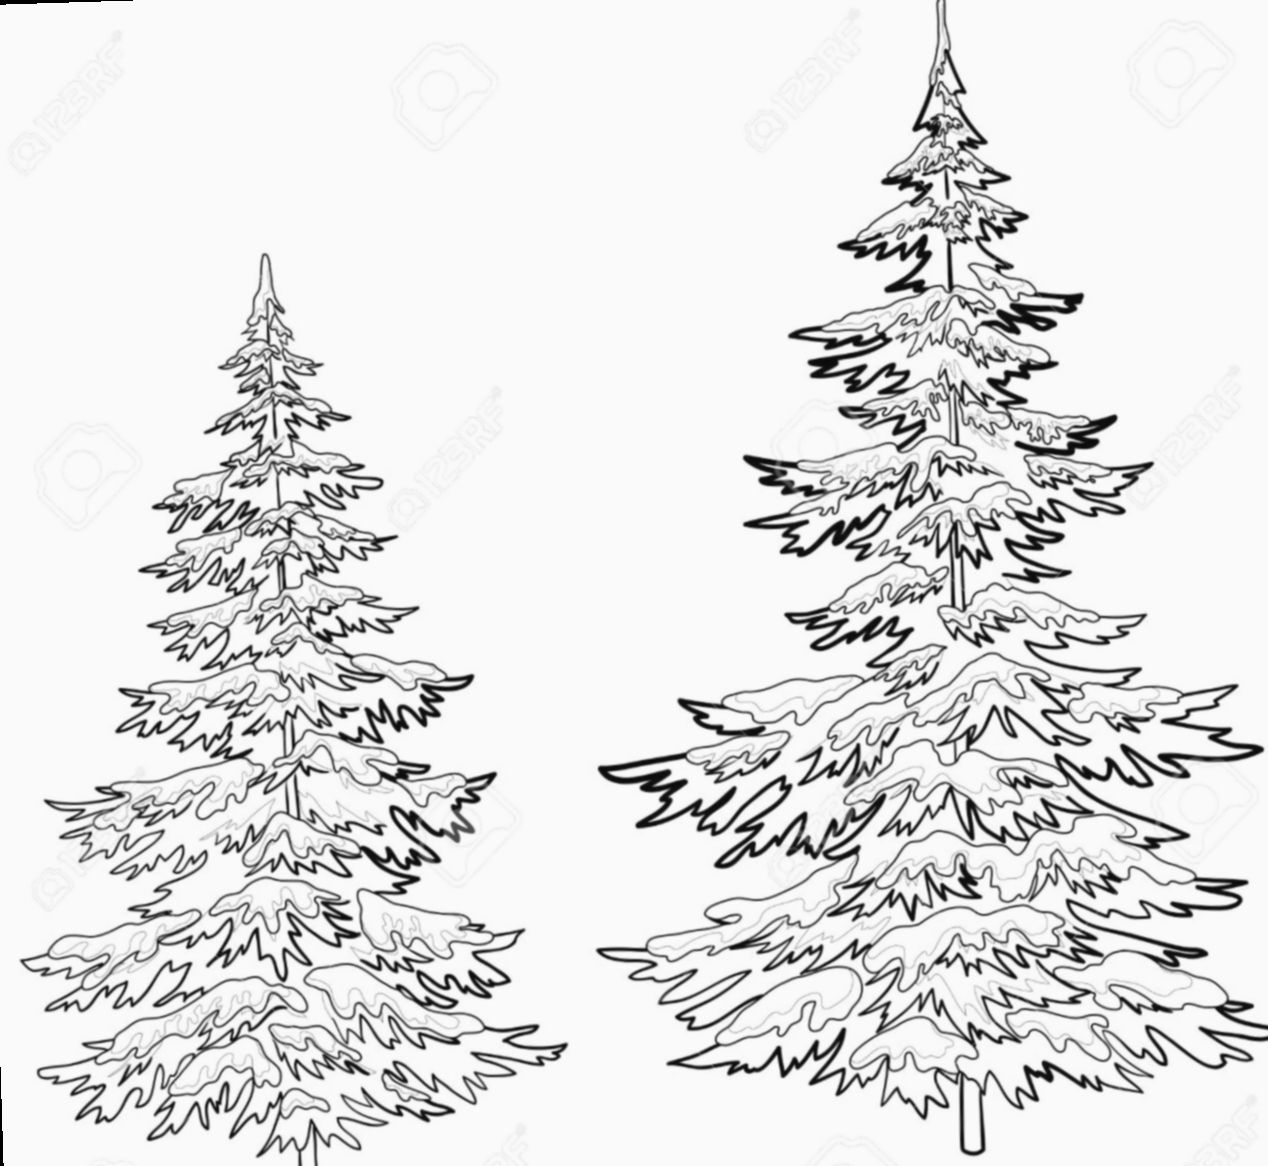 Christmas Tree Drawing Realistic Christmasgifts Christmasdecor Christmasdecorations In 2020 Tree Drawings Pencil Christmas Tree Drawing Tree Drawing